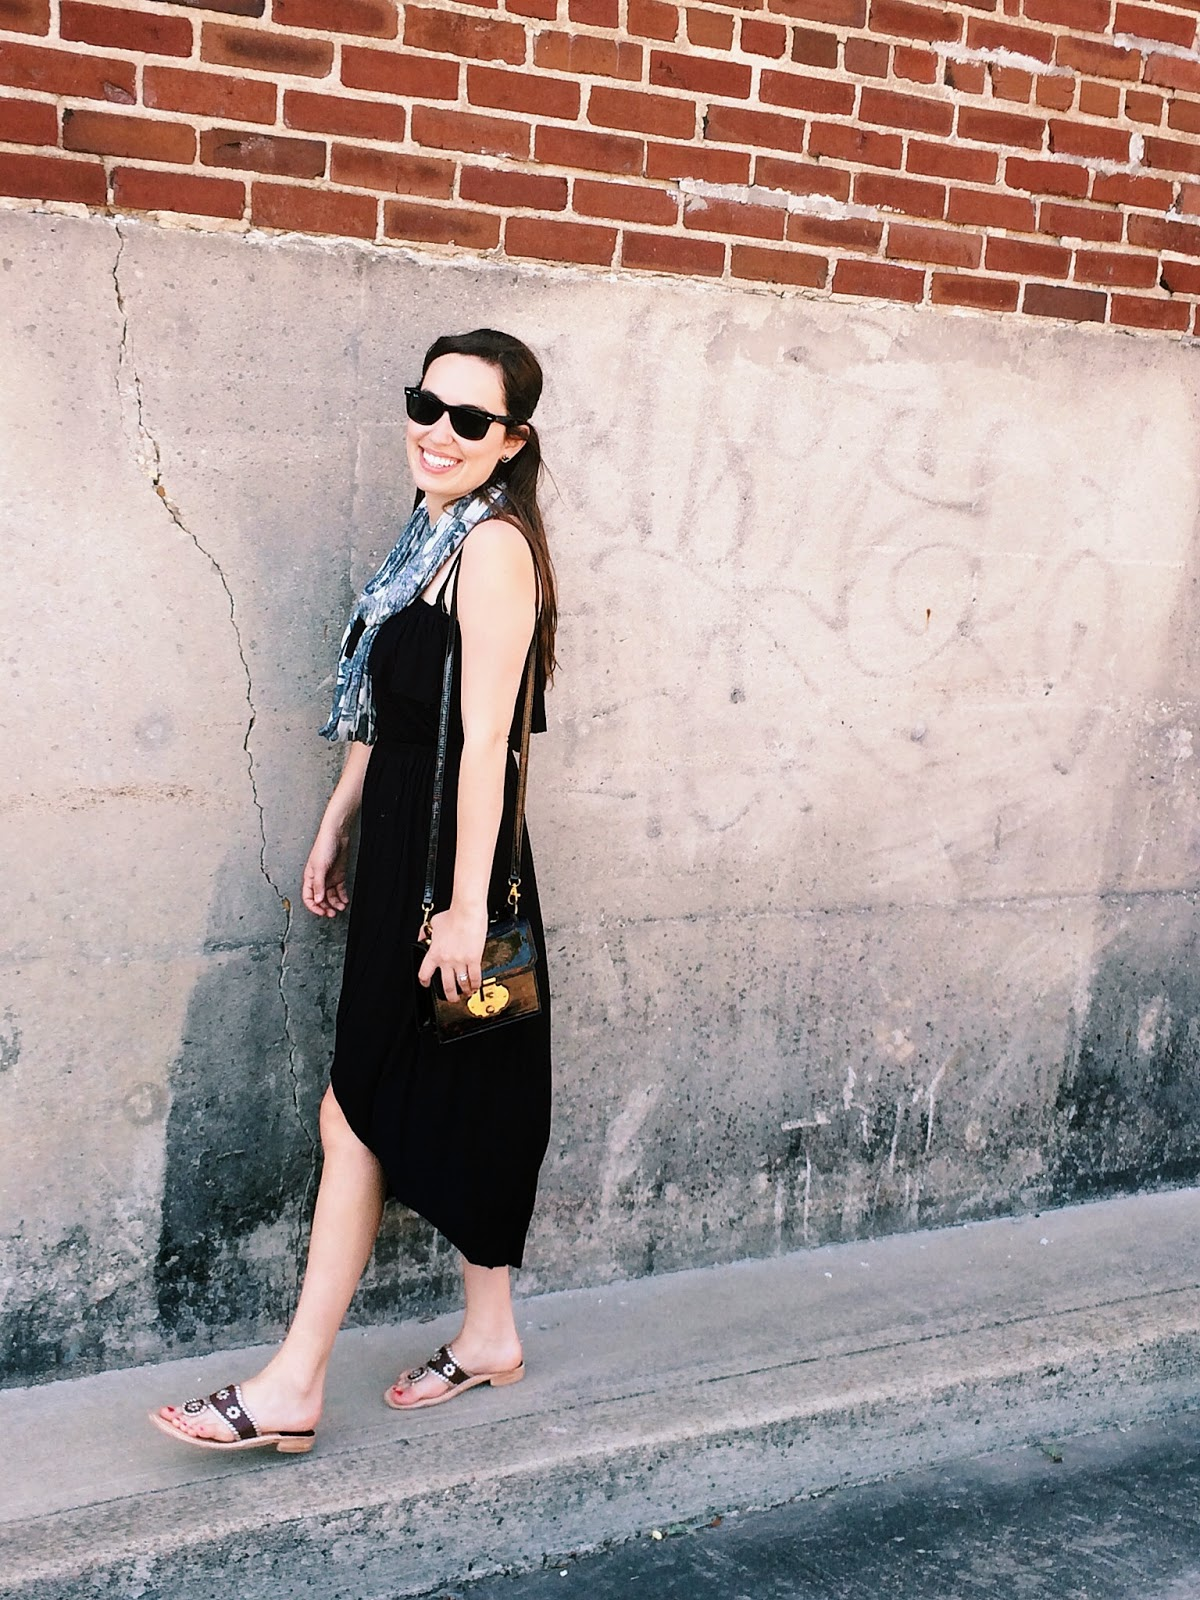 trendy in texas, blog, jack rogers, black maxi dress, strapless black maxi dress, tasseled necklace scarf, tasseled necklace scarf anthropologie, eyelet vines infinity scarf, anthropologie, alice kerley